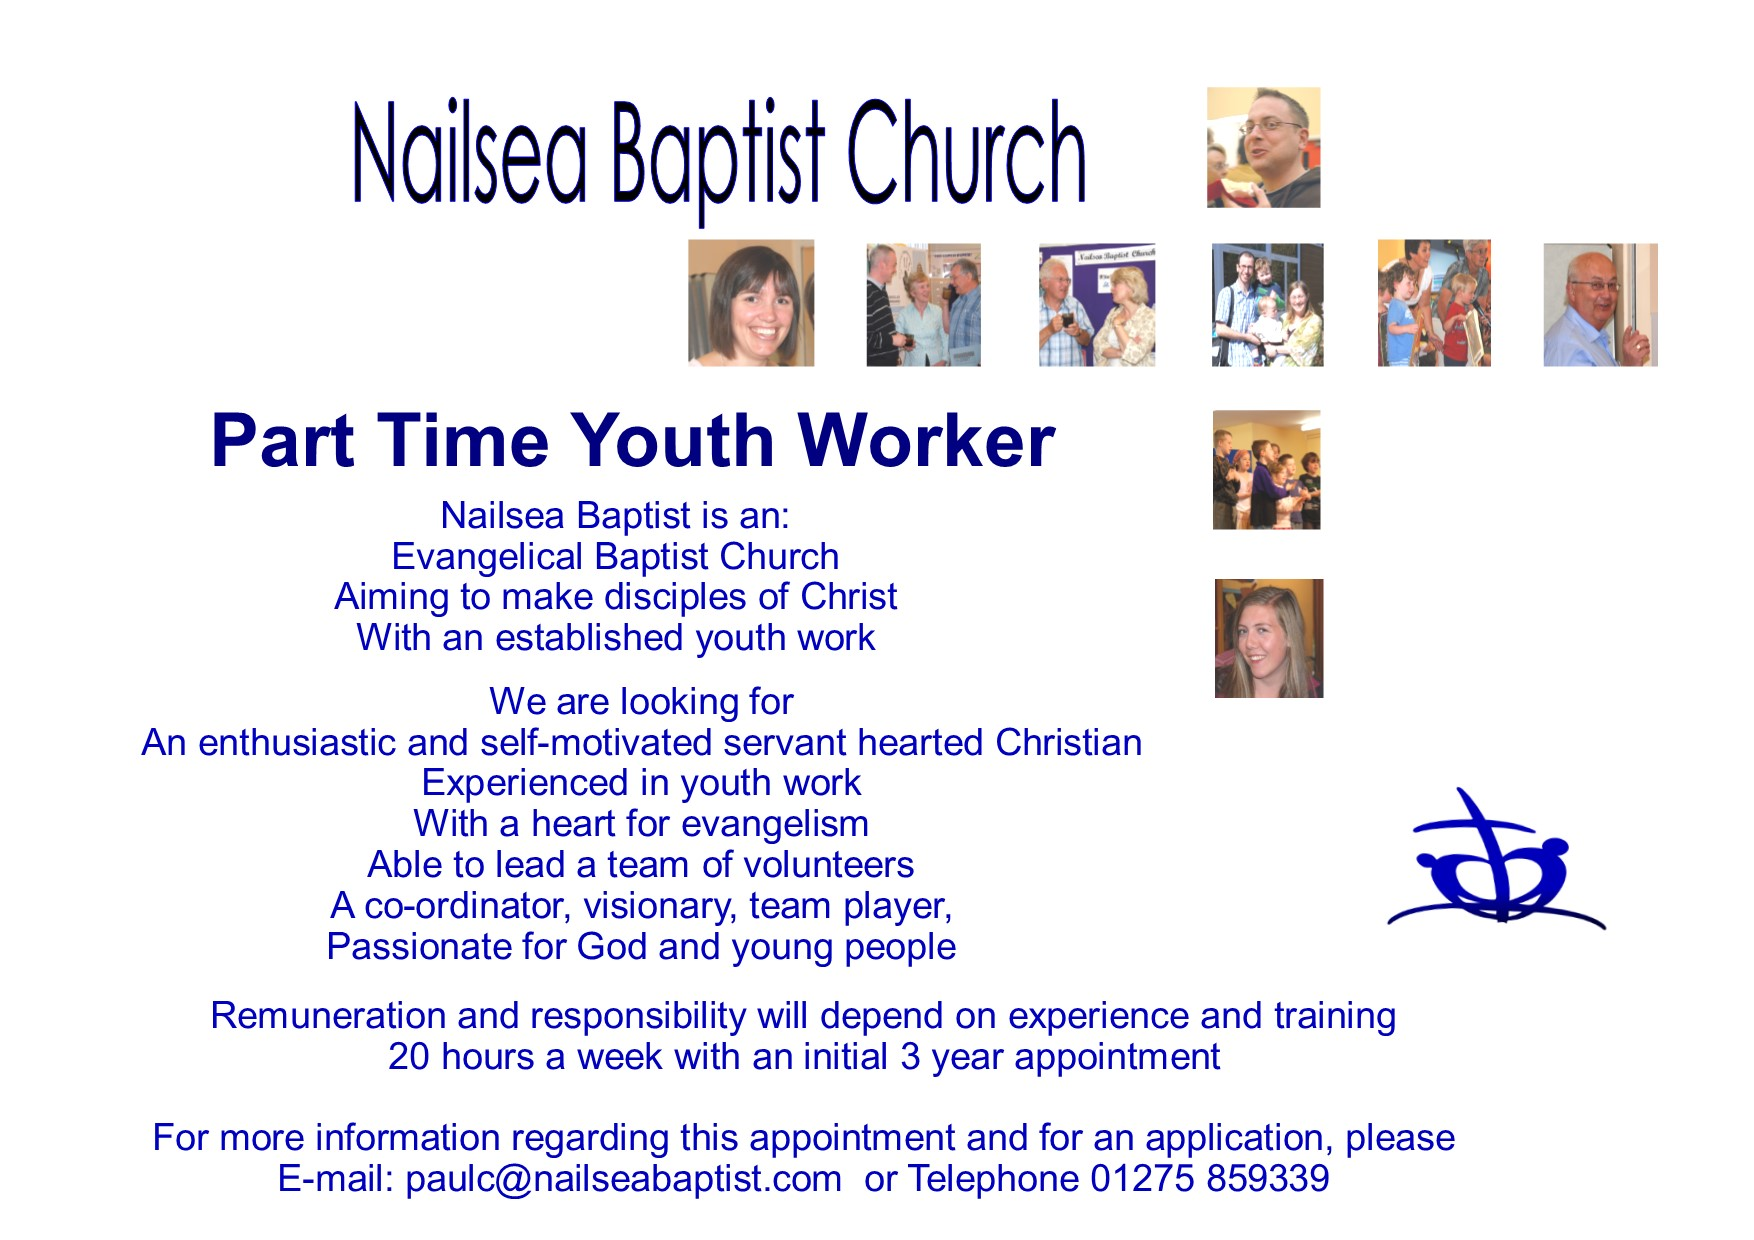 west of england baptist association job opportunity at nailsea part time youth worker advert